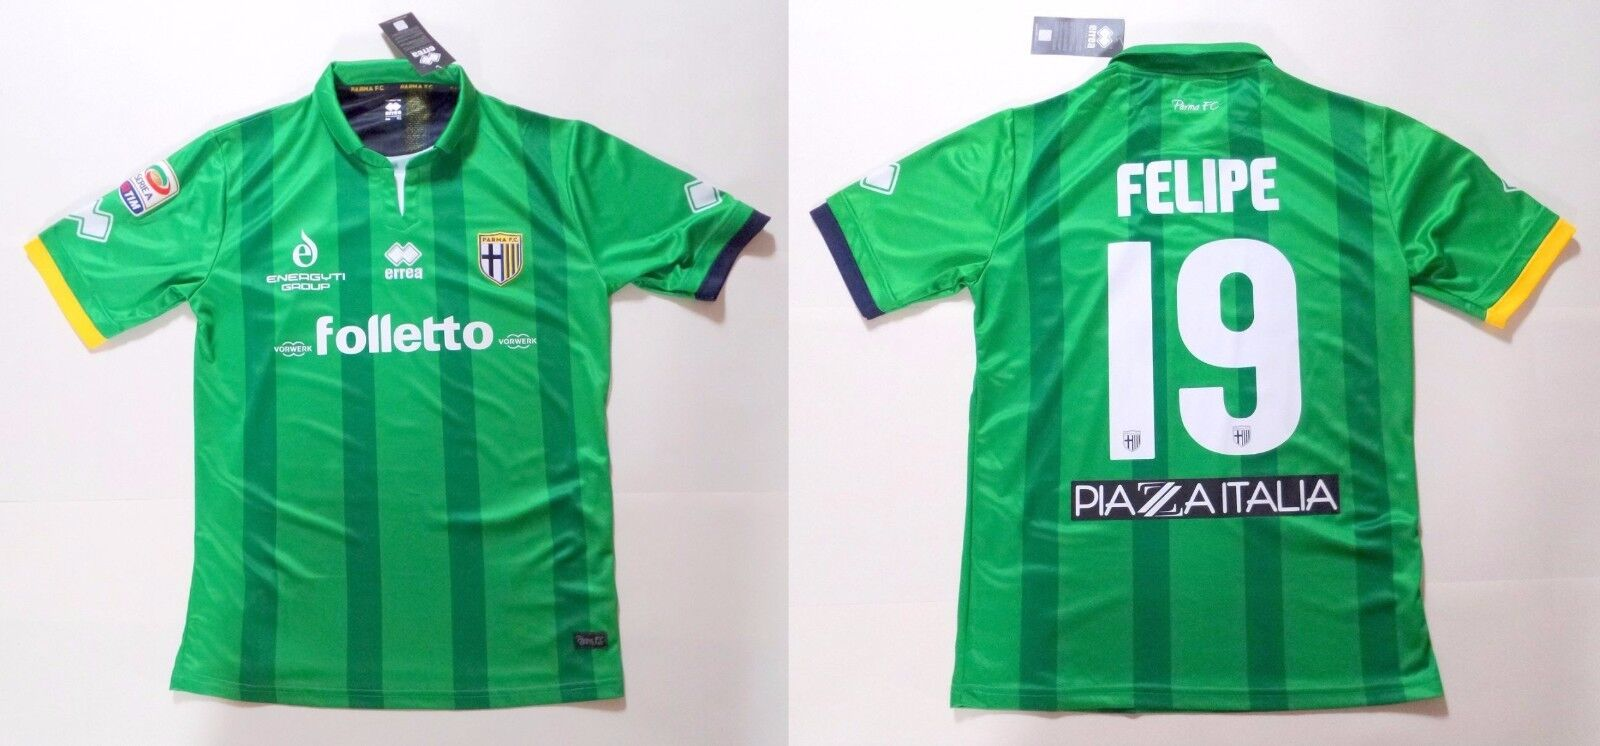 Parma Juventus Errea Felipe 19 Official Match Jersey T-Shirt Competition Issue